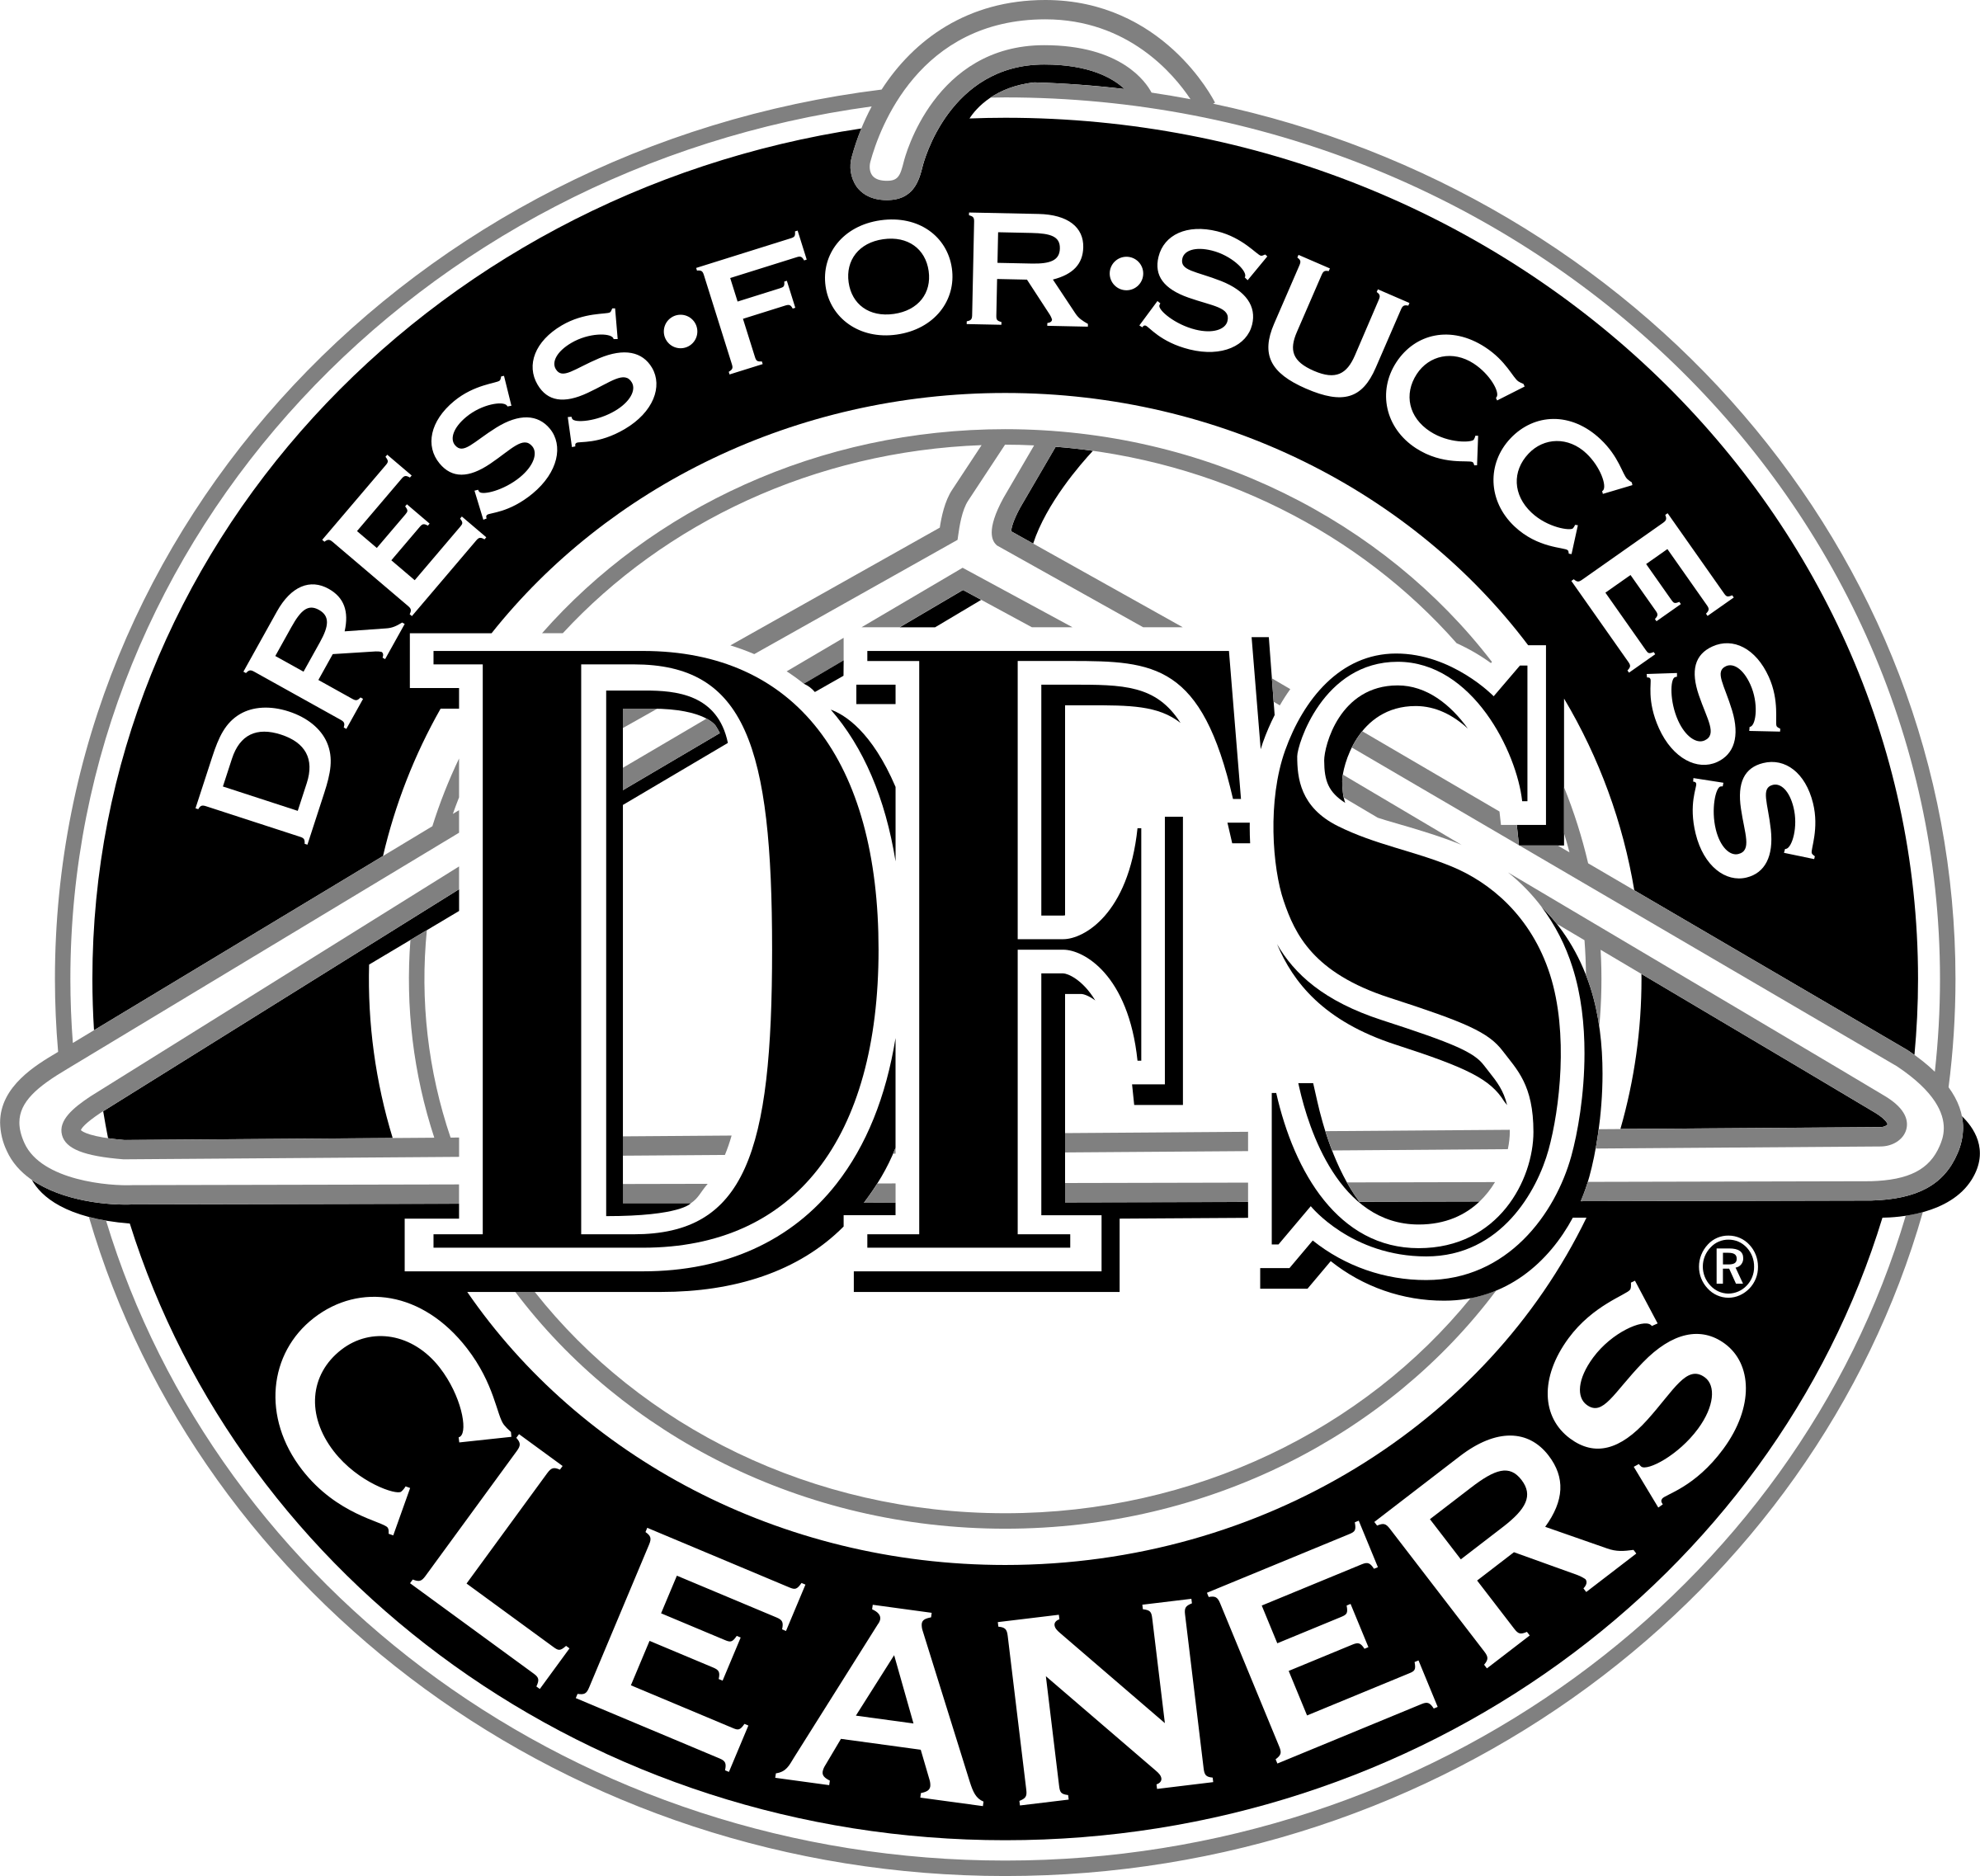 DFS Cleaners Logo PNG Transparent & SVG Vector.